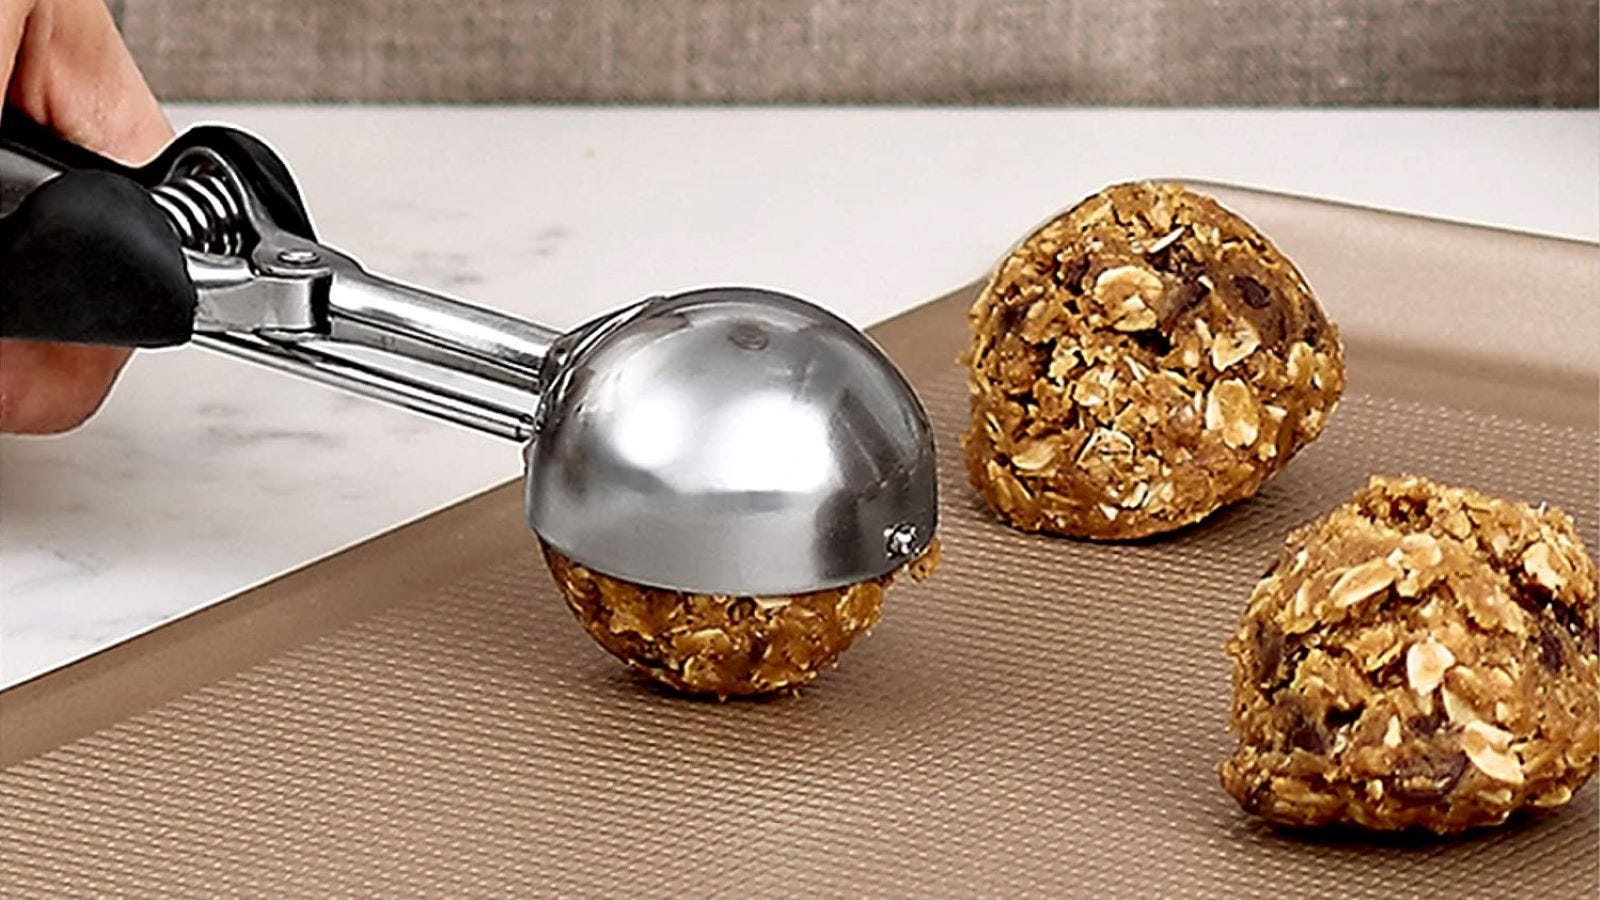 Someone scooping cookie dough onto a cookie sheet with the OXO Good Grips Cookie Scoop.